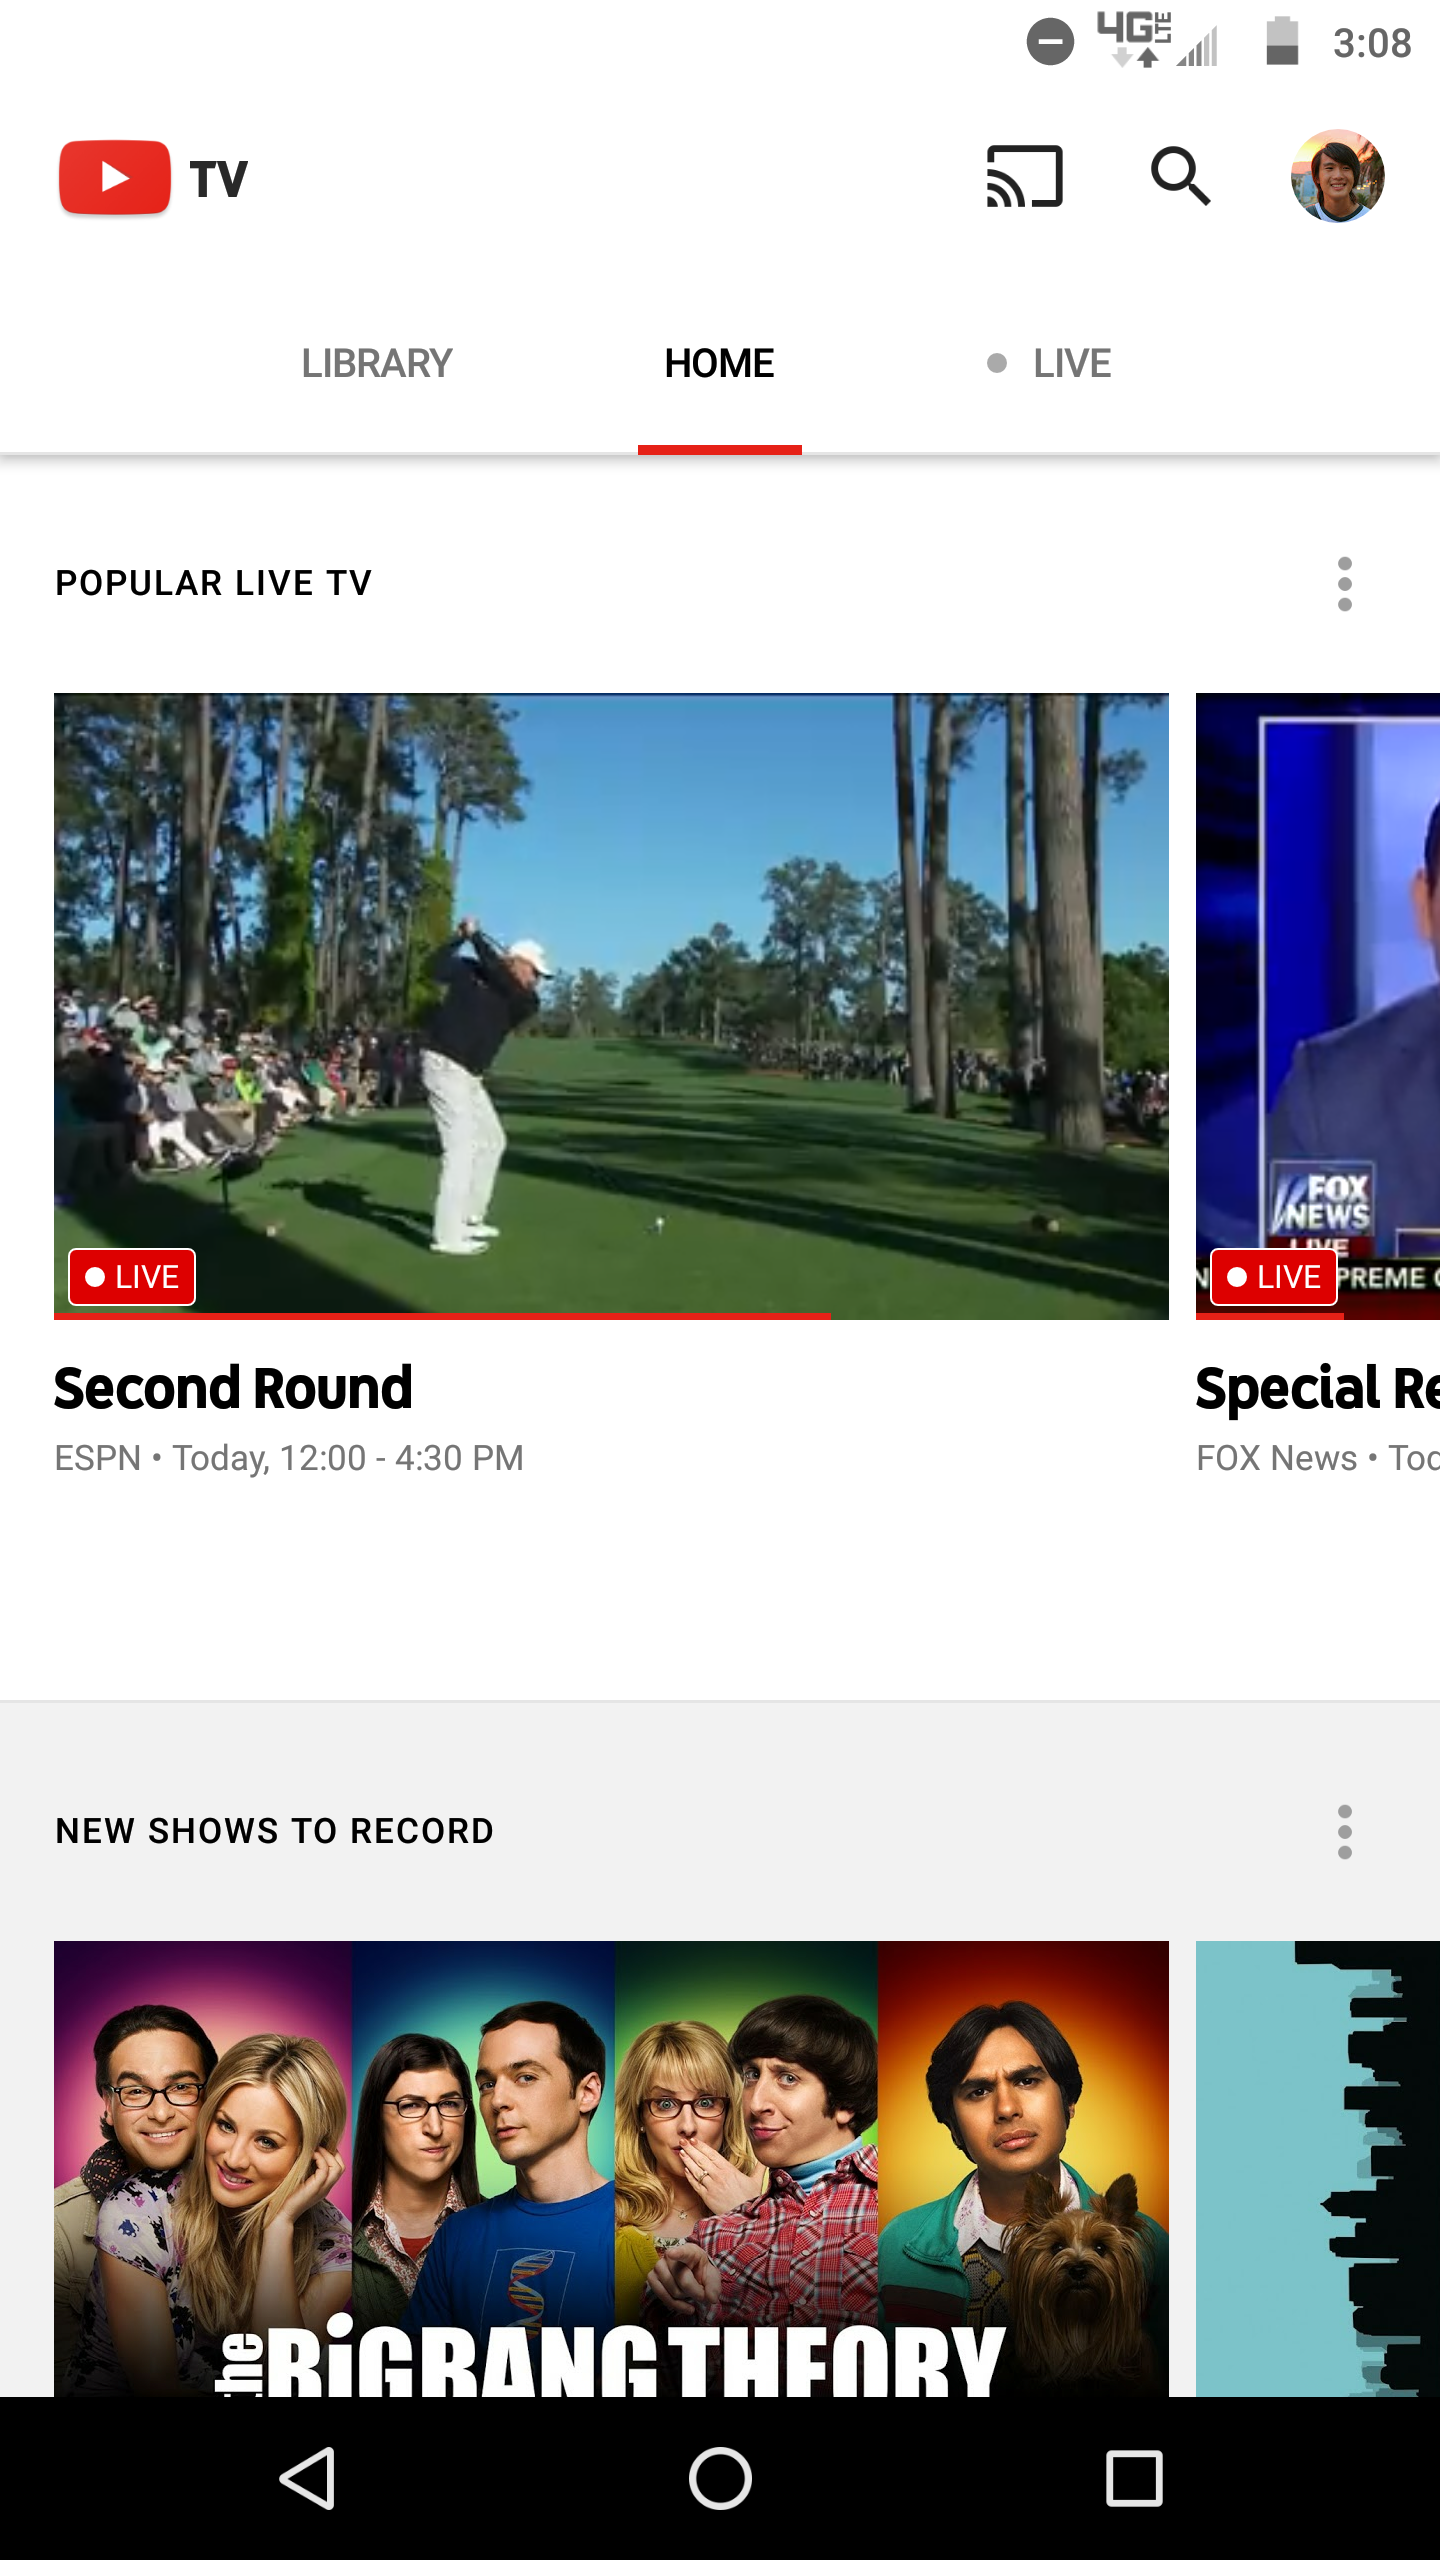 Hands-on: YouTube TV is familiar, stable, and already changing my